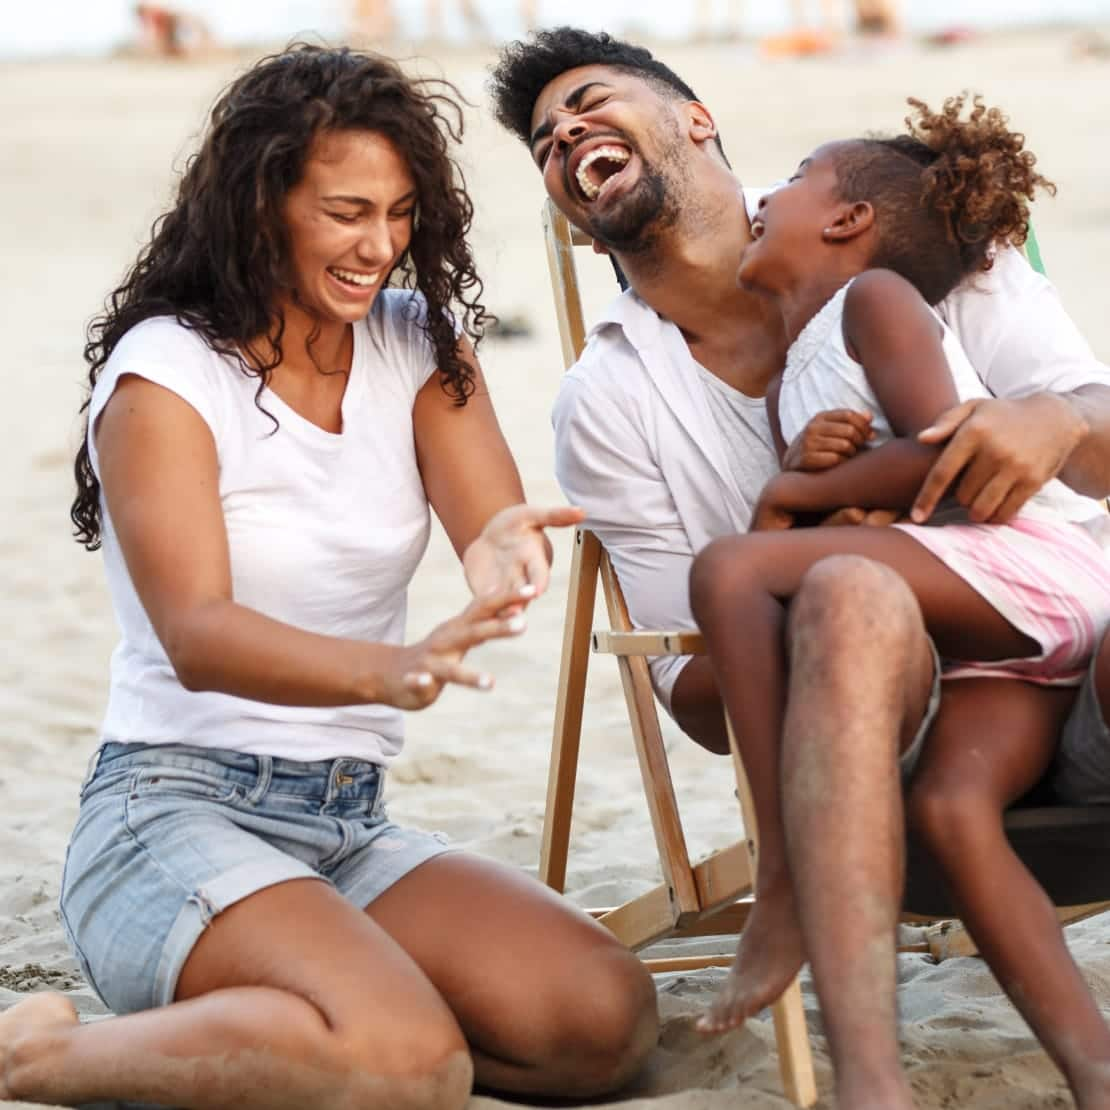 Family laughing at the beach